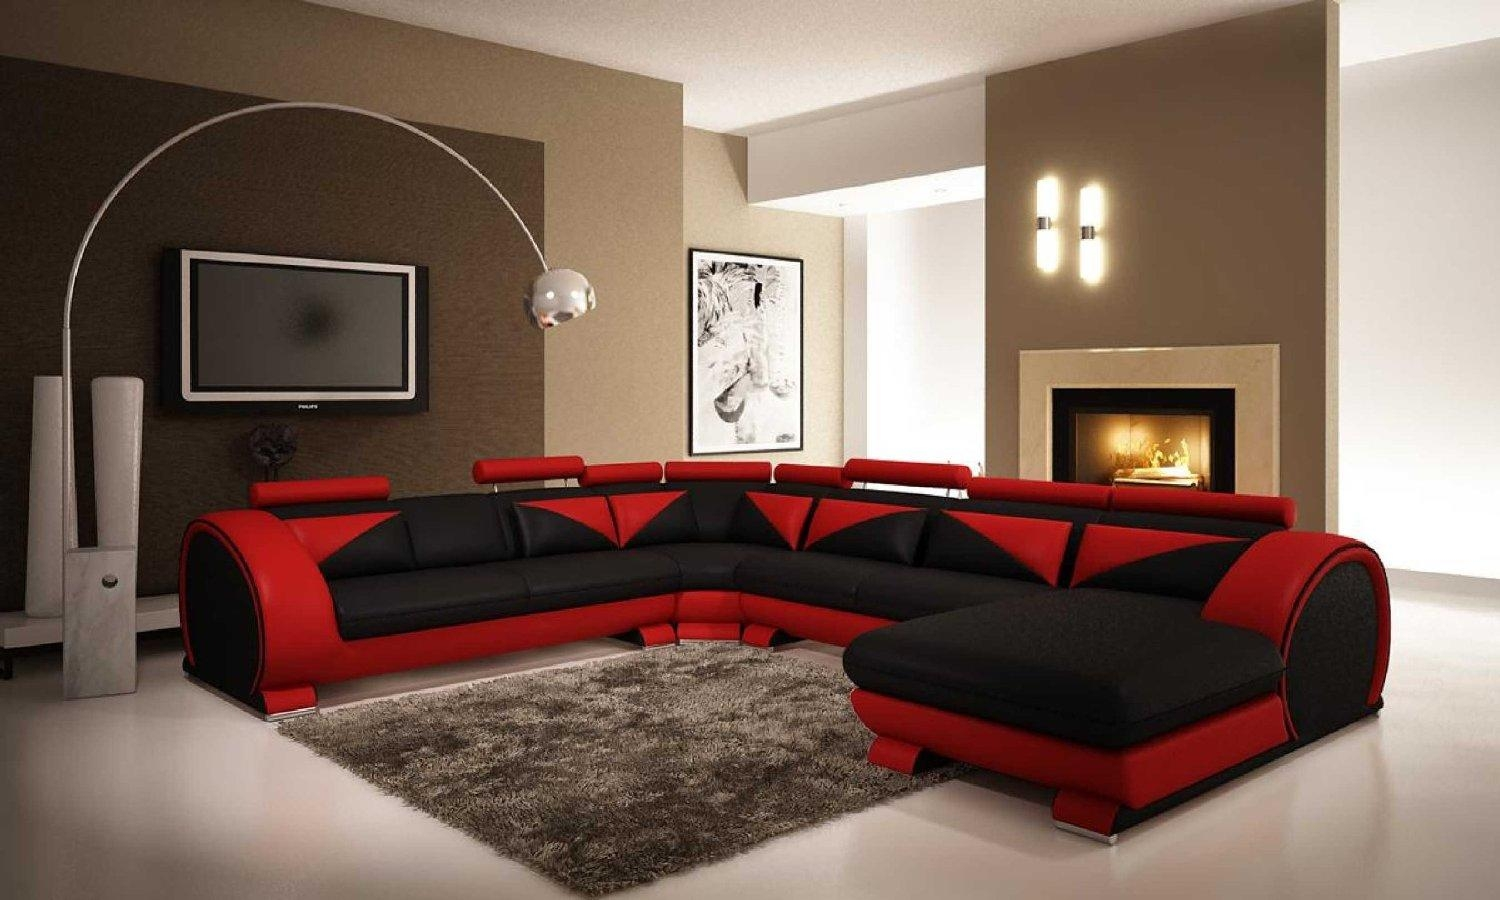 Living Room Modern Living Room Black And Red Modern Red And Black Pertaining To Red Black Sectional Sofa (Image 8 of 20)